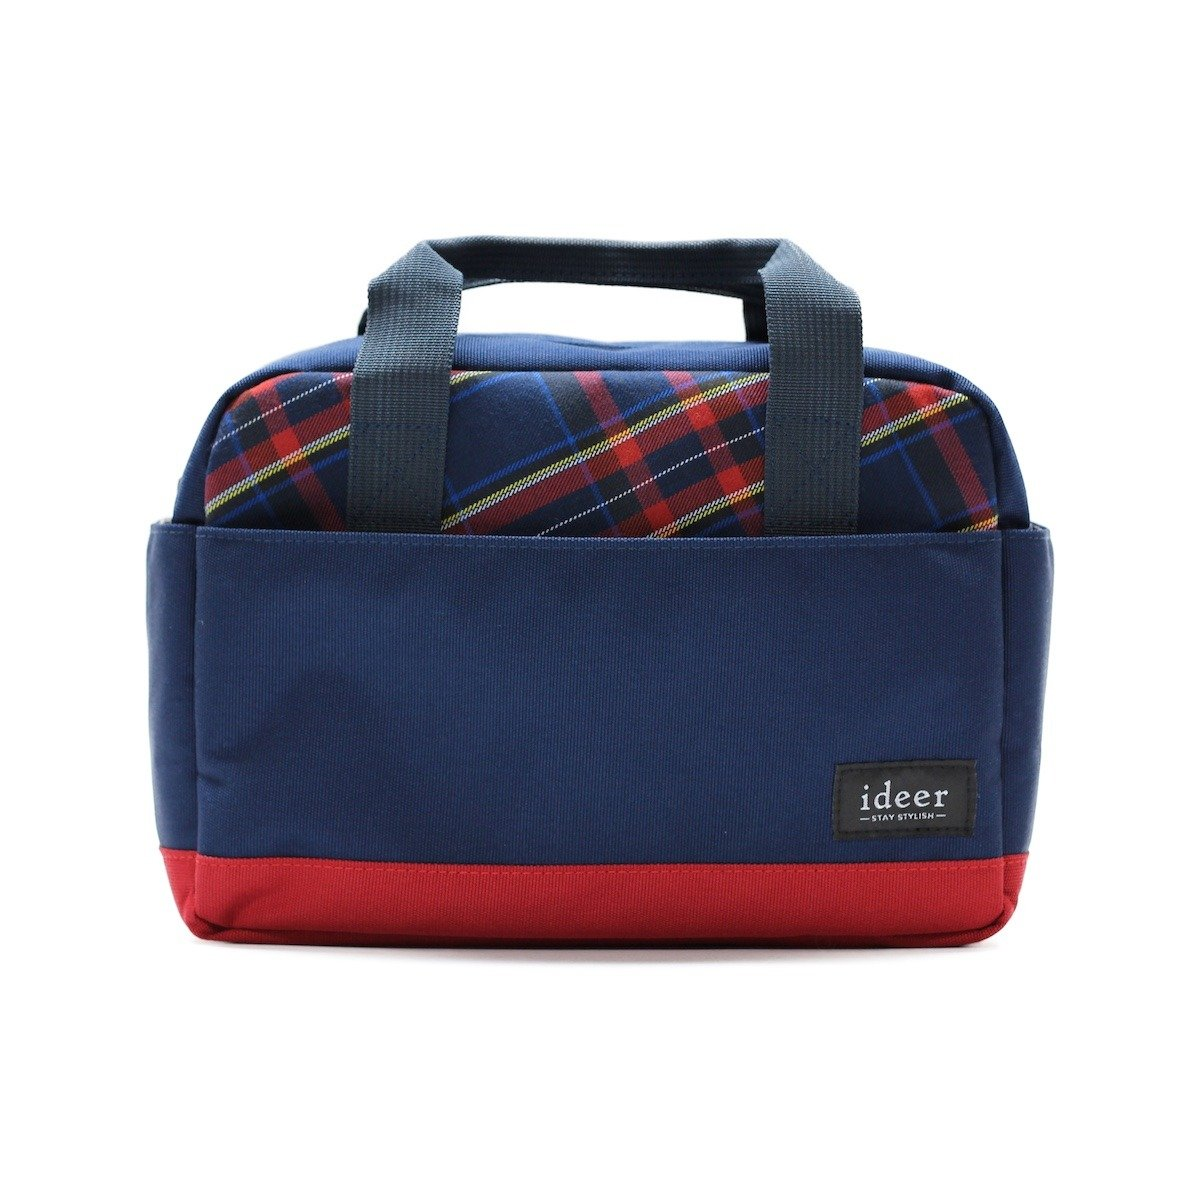 Harvey Blueberry DSLR Camera Bag